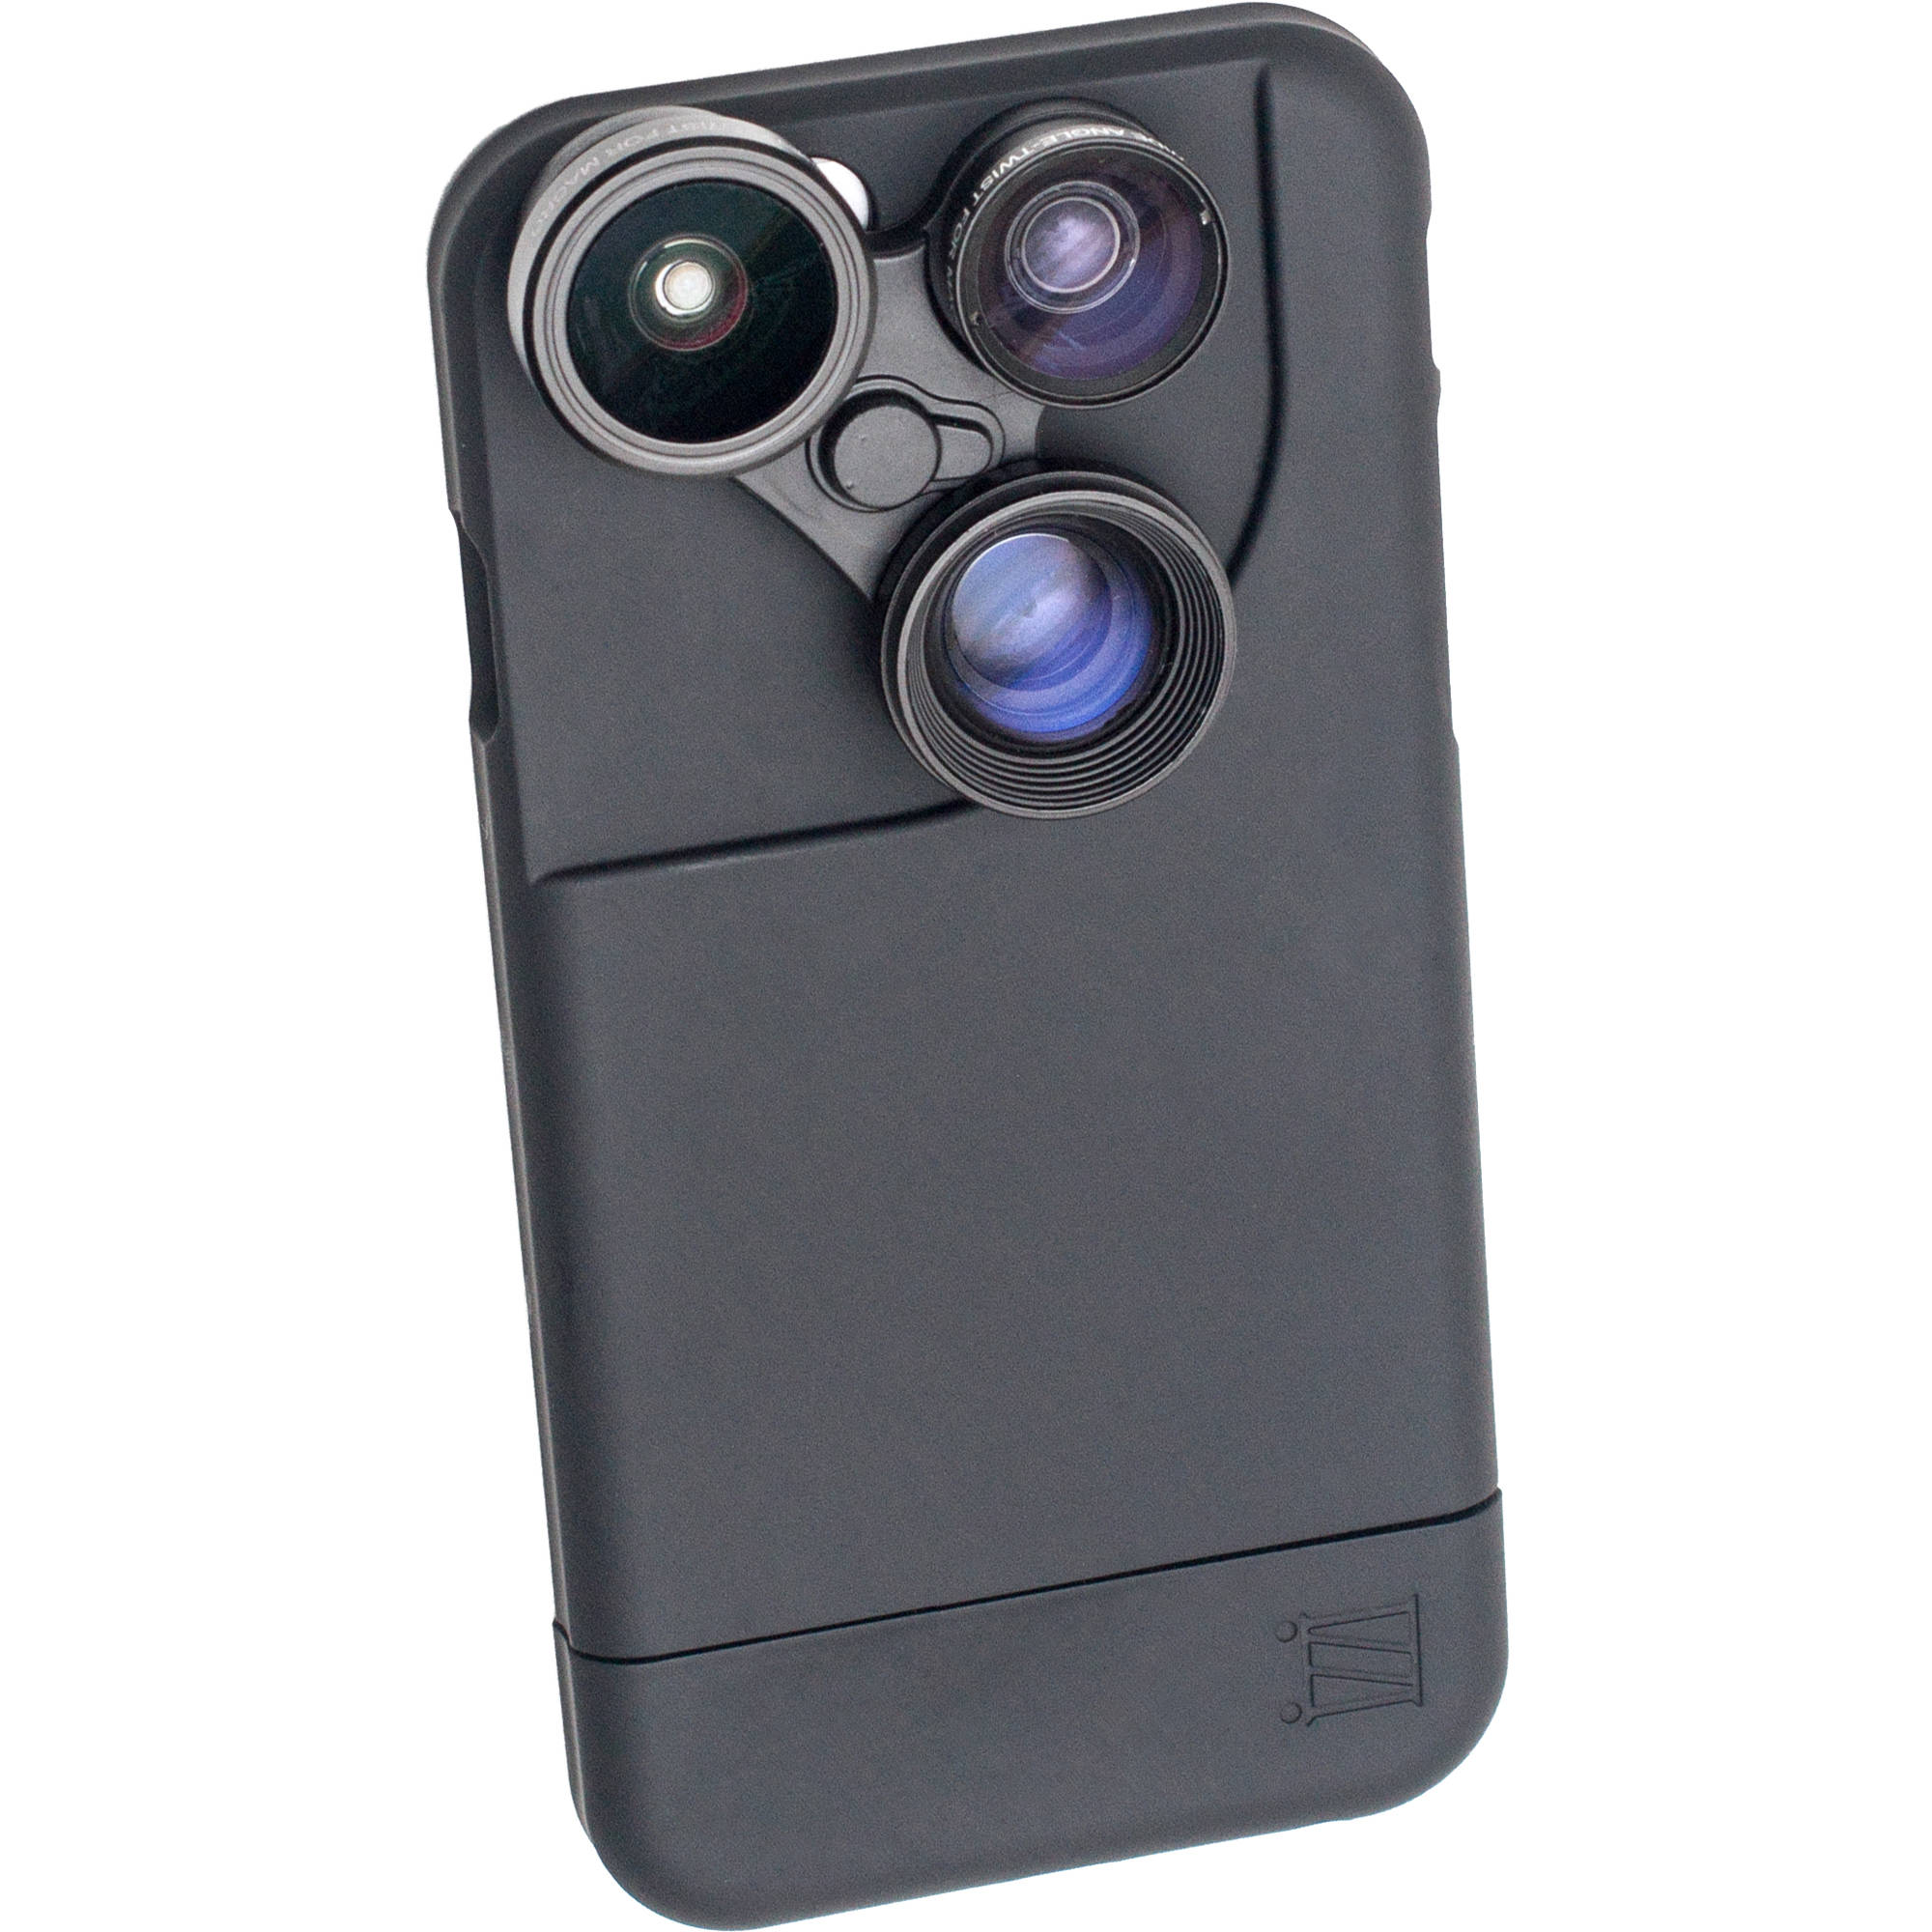 af4ac064159 iZZi Gadgets iZZi Slim 6 5-in-1 Photo Lens Case for iPhone 6 6s (Black)